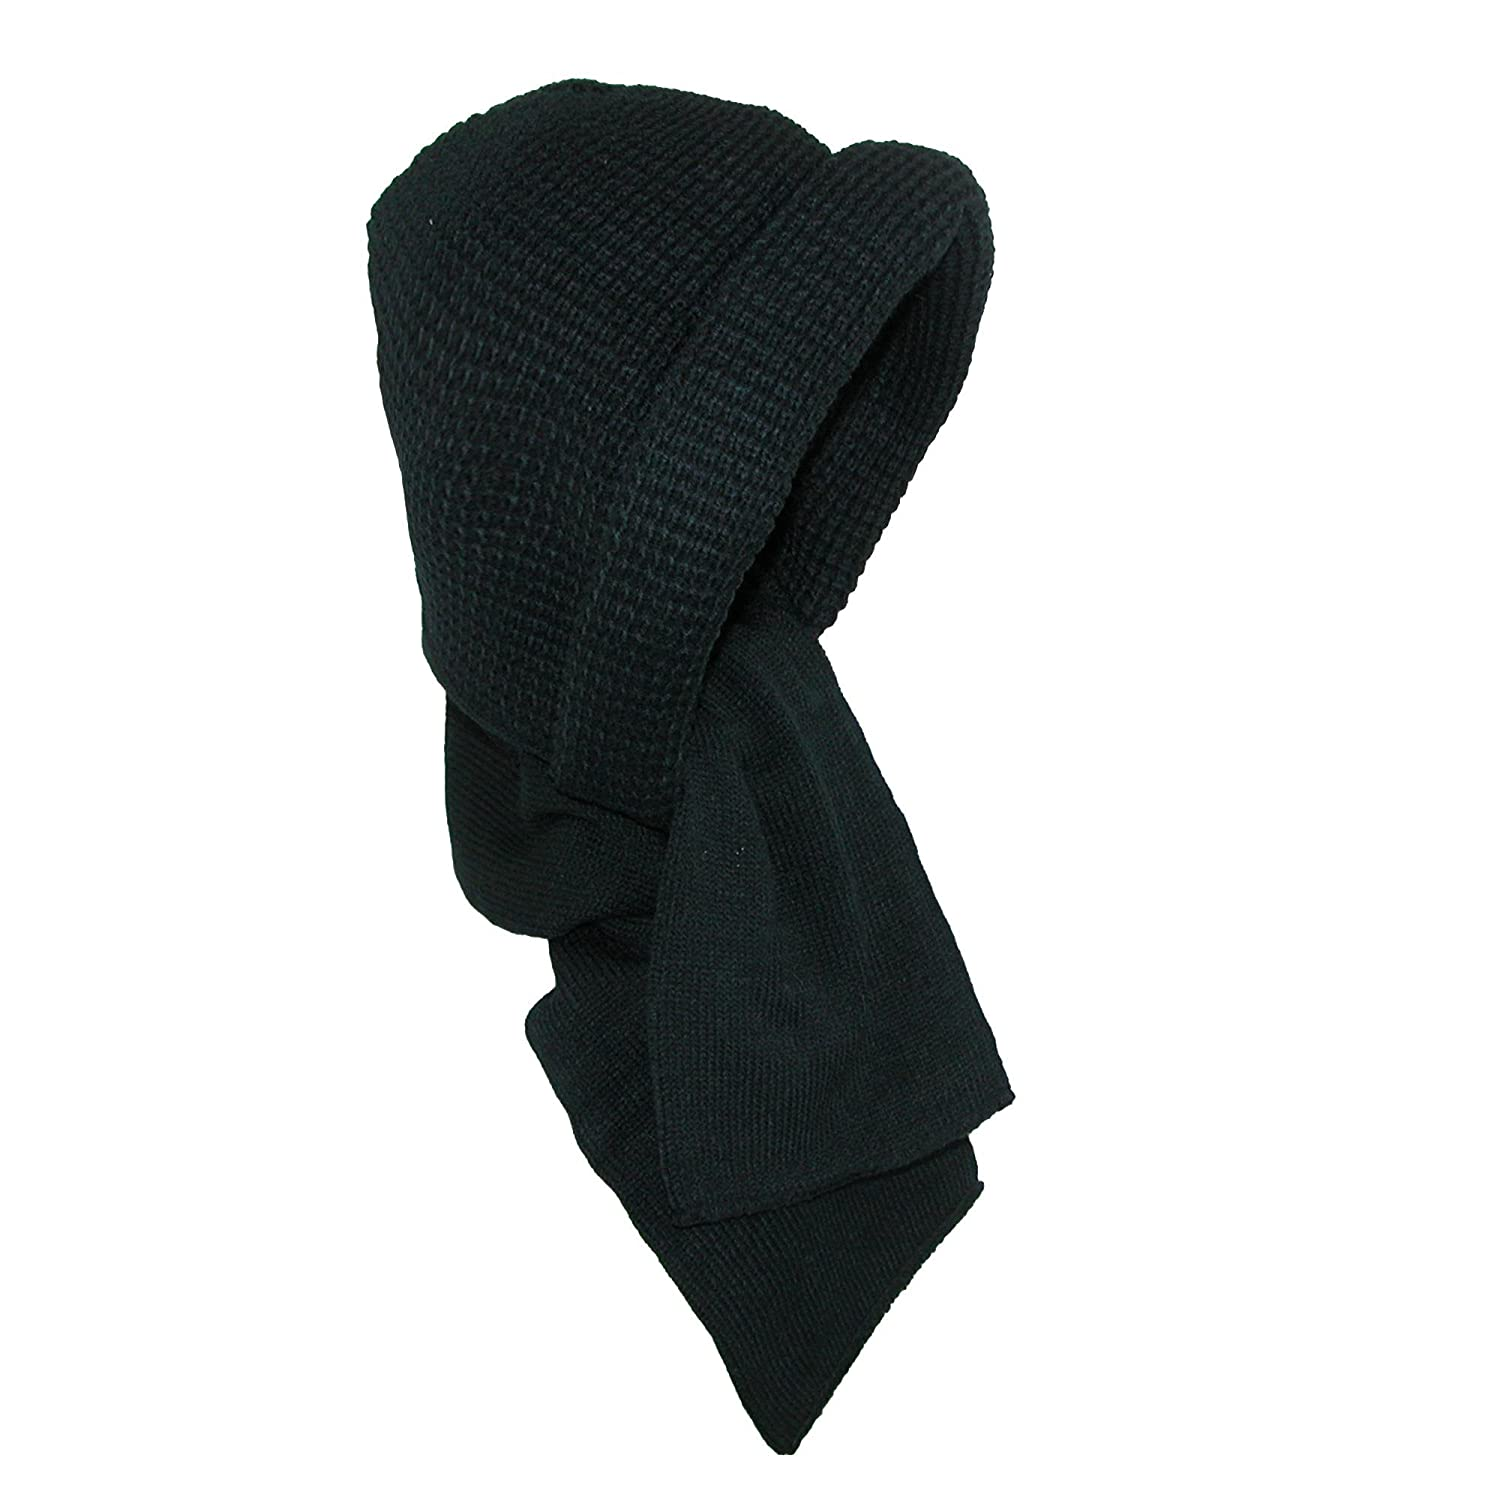 CTM Kid's 4-14 Hooded Scarf Black RG-KH1143-BLK